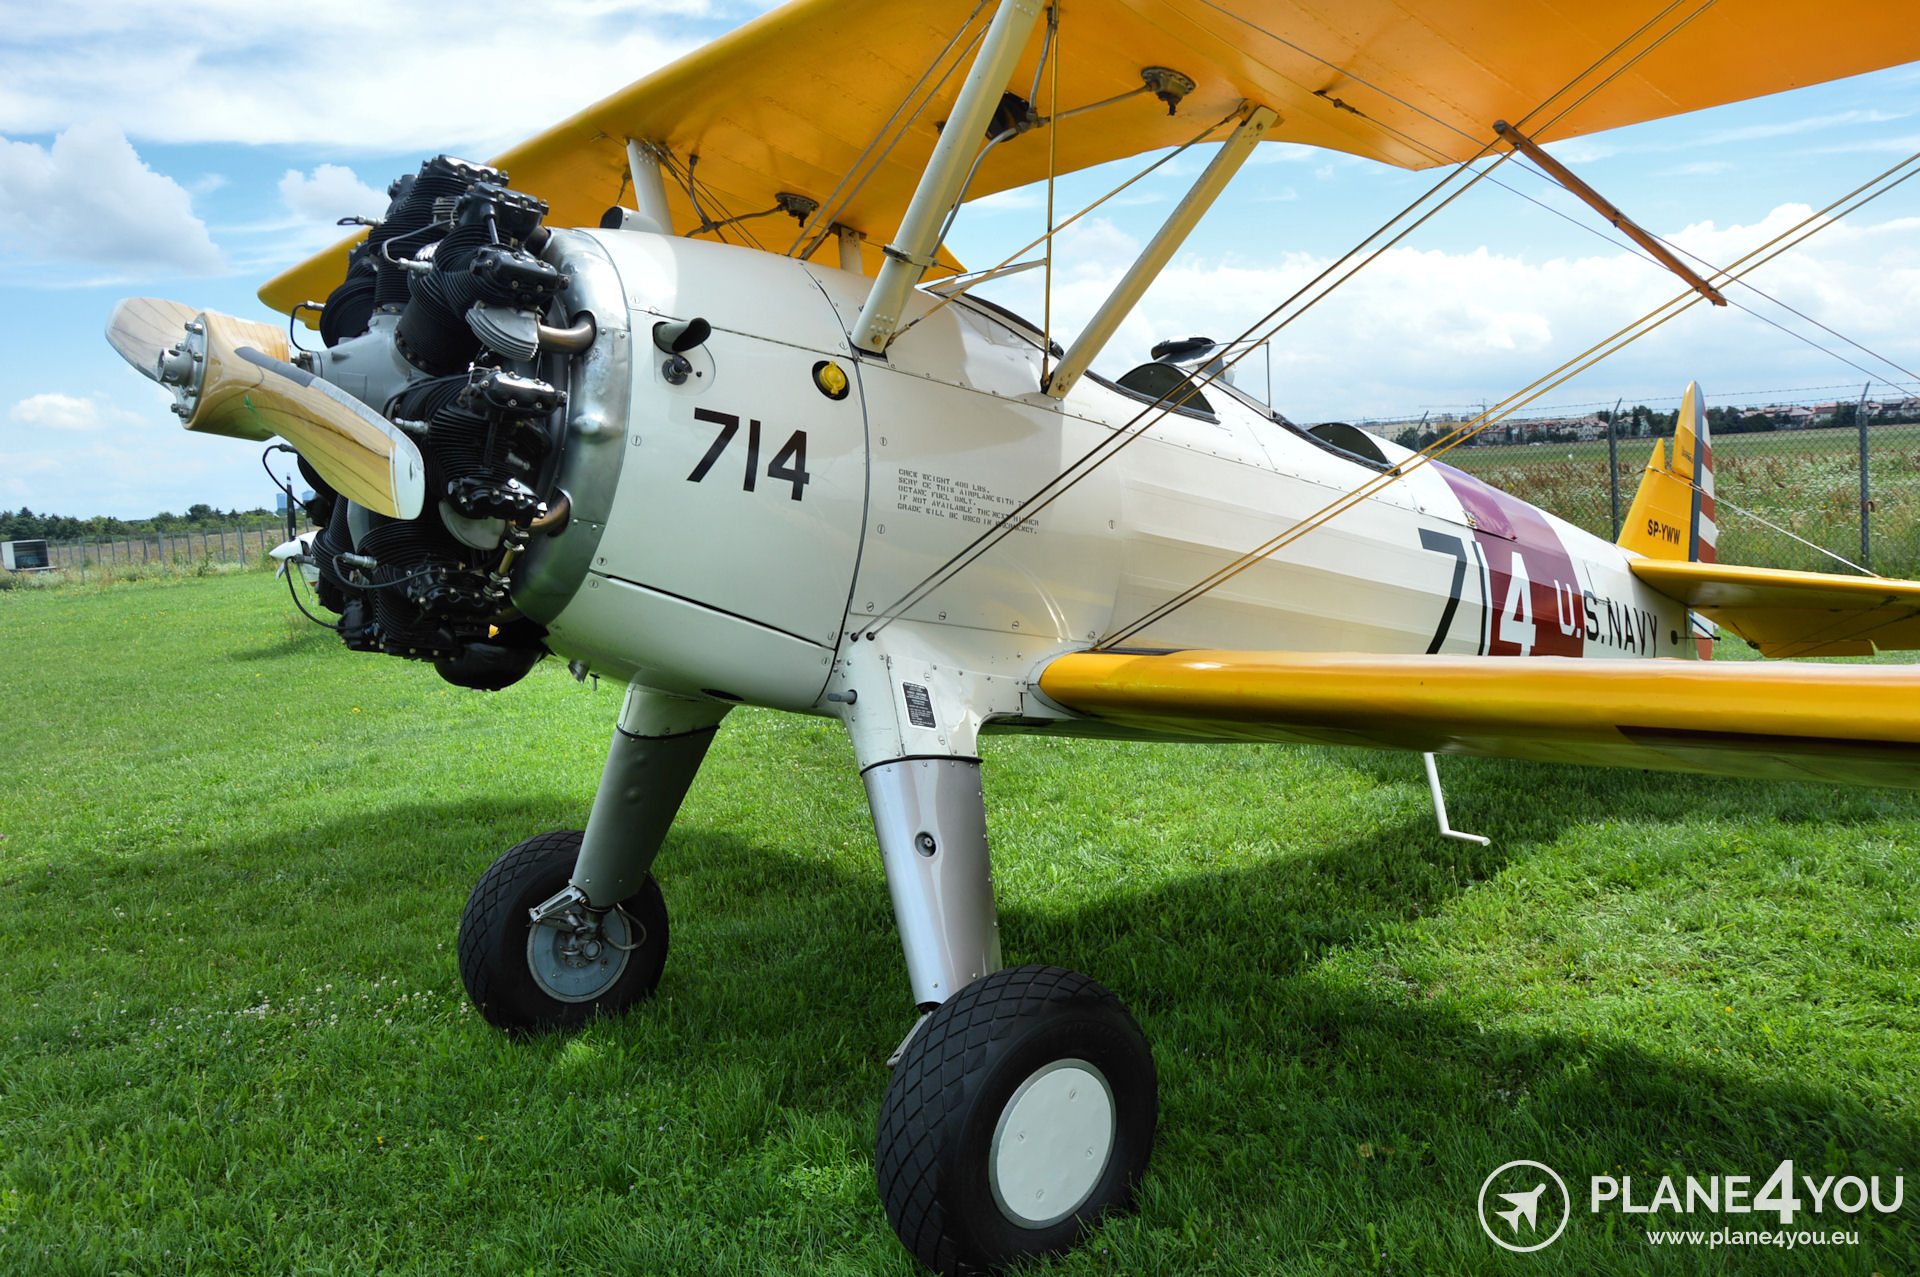 88  BOEING B75 STEARMAN SP-YWW | Sold aircraft | Plane4You Aircraft